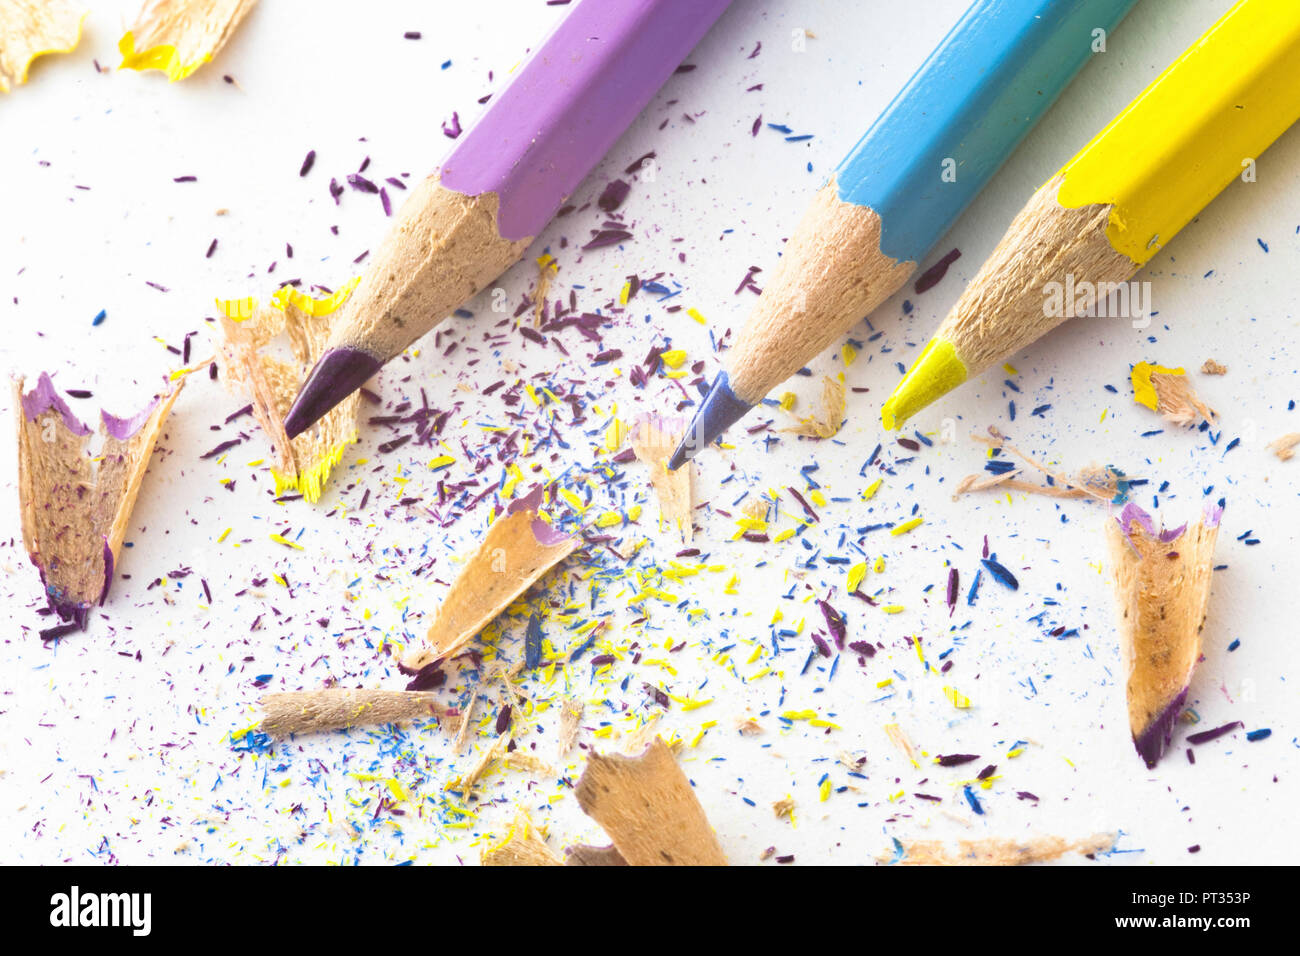 cyan magenta yellow pencils with splinter waste on white paper - Stock Image